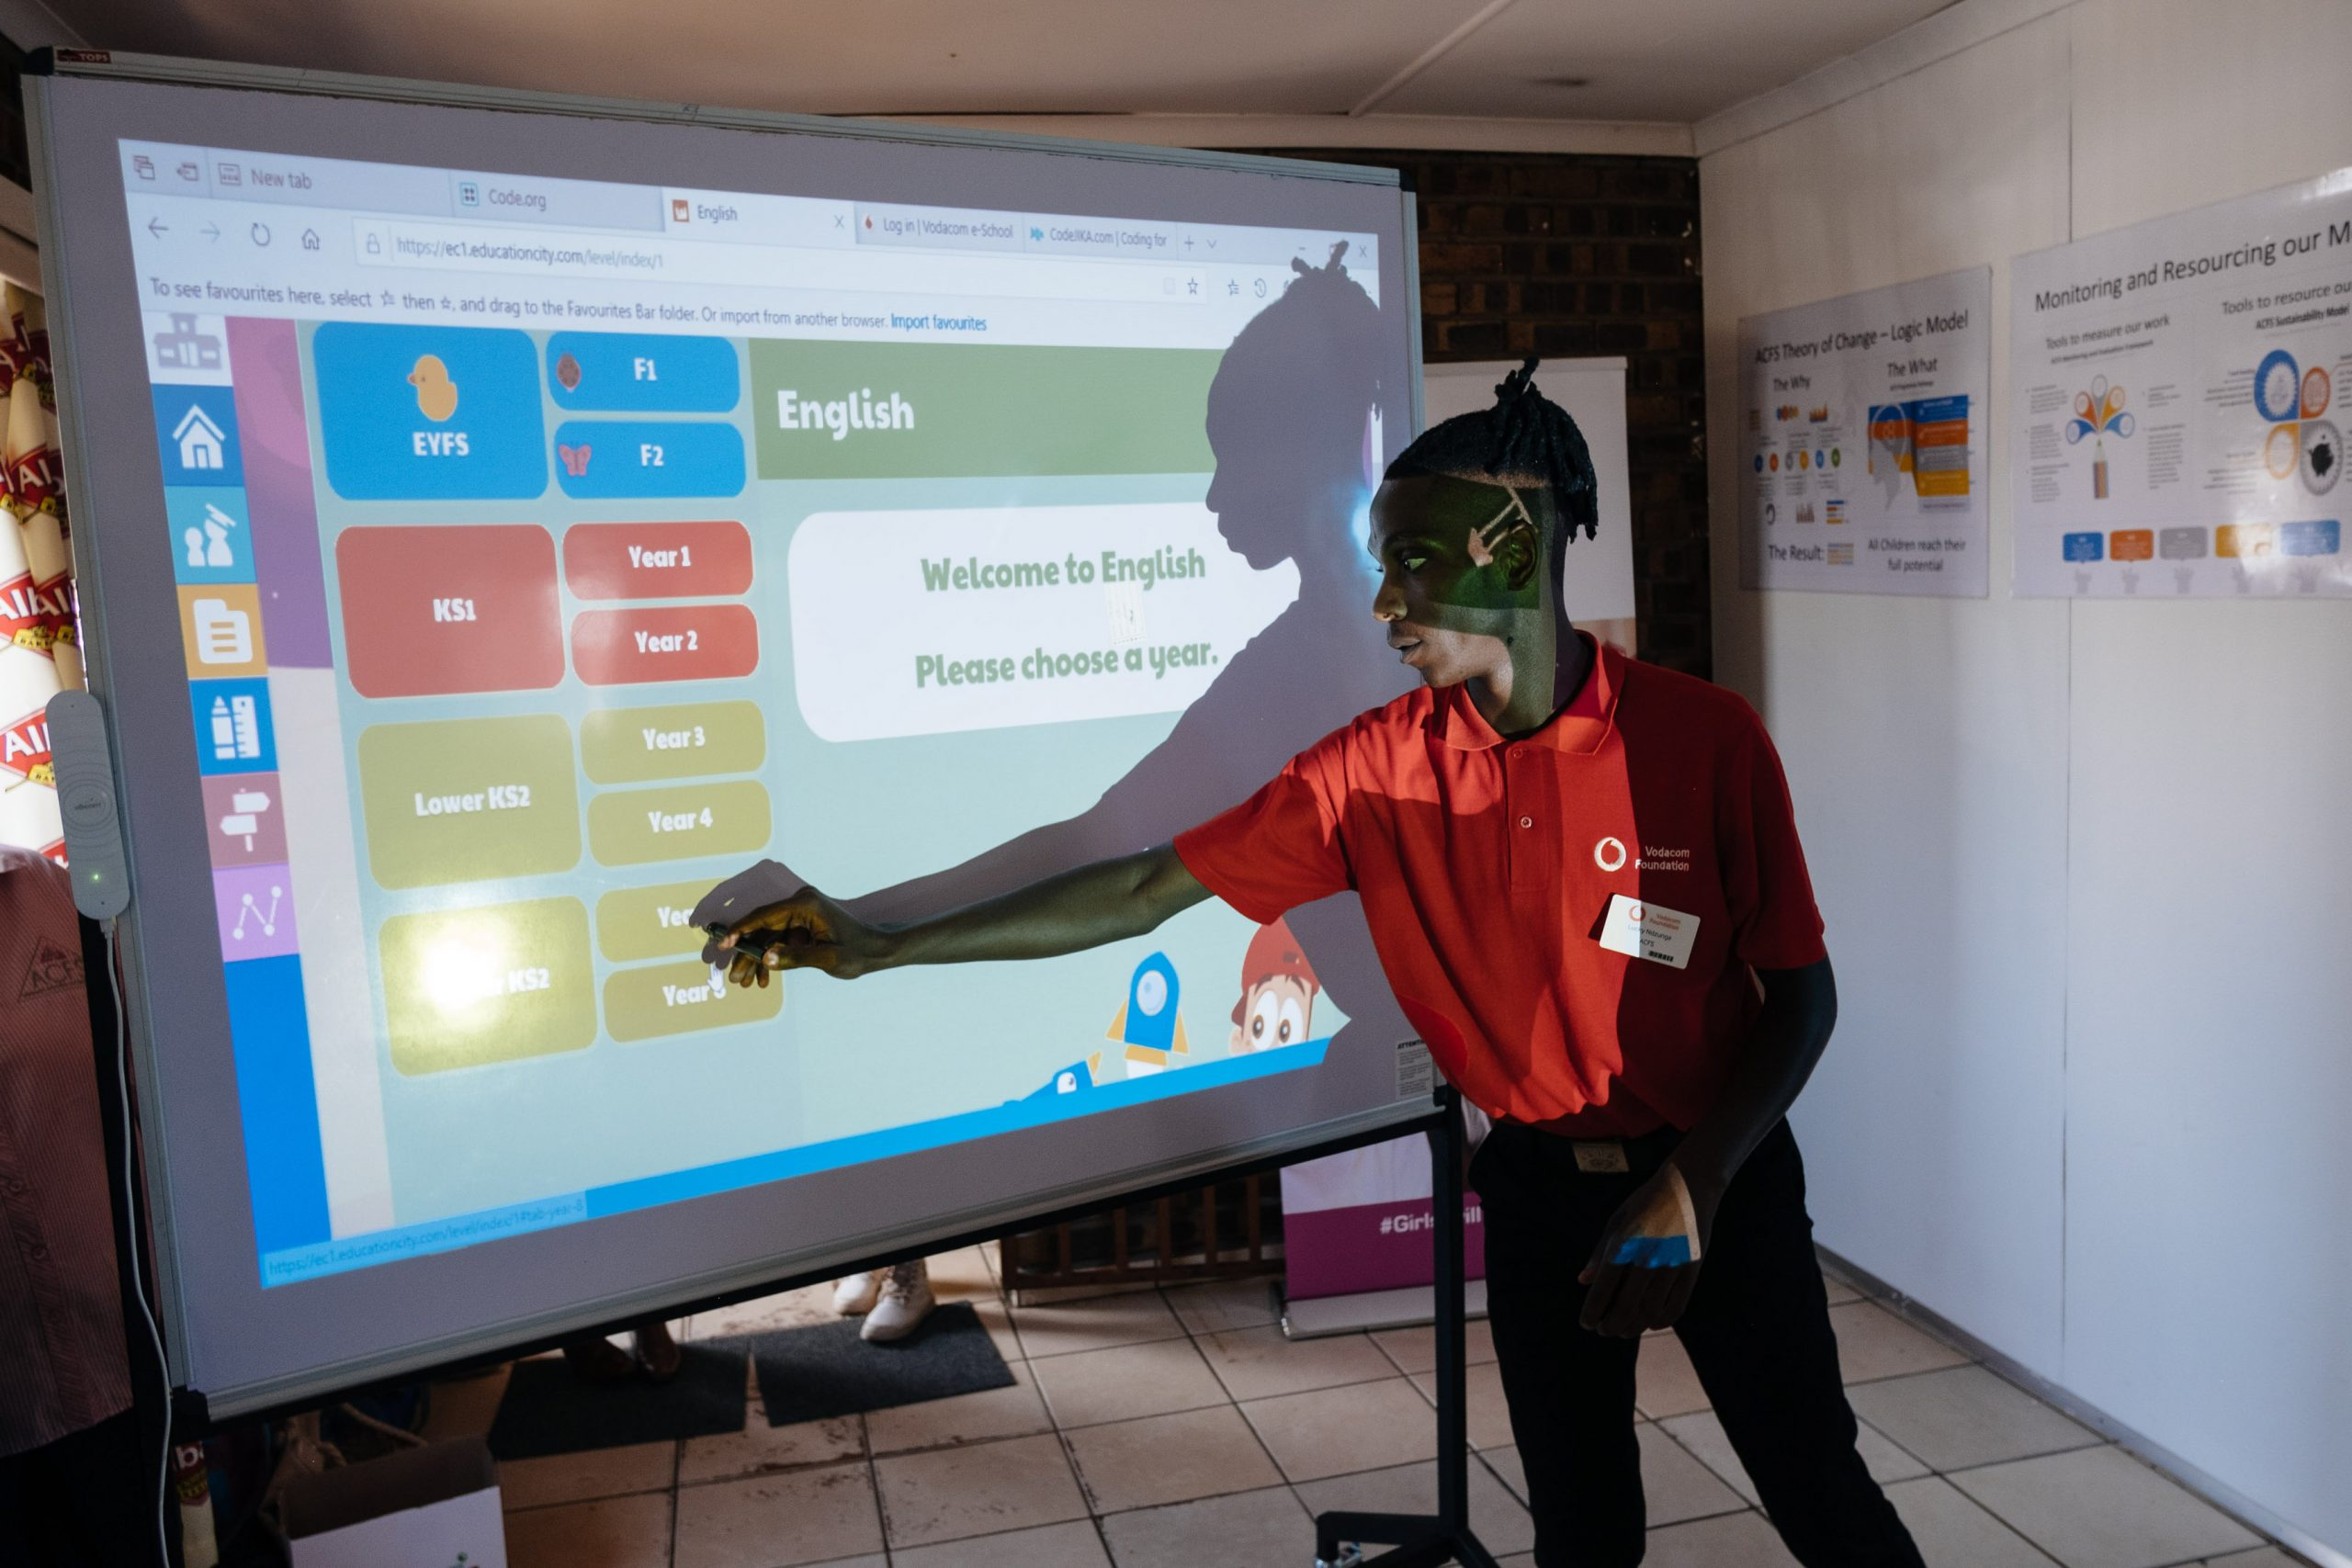 26 February 2020: African Children's Feeding Scheme volunteer Lucky Ndzunga, 26, demonstrates one of the online learning platforms used for skills development.